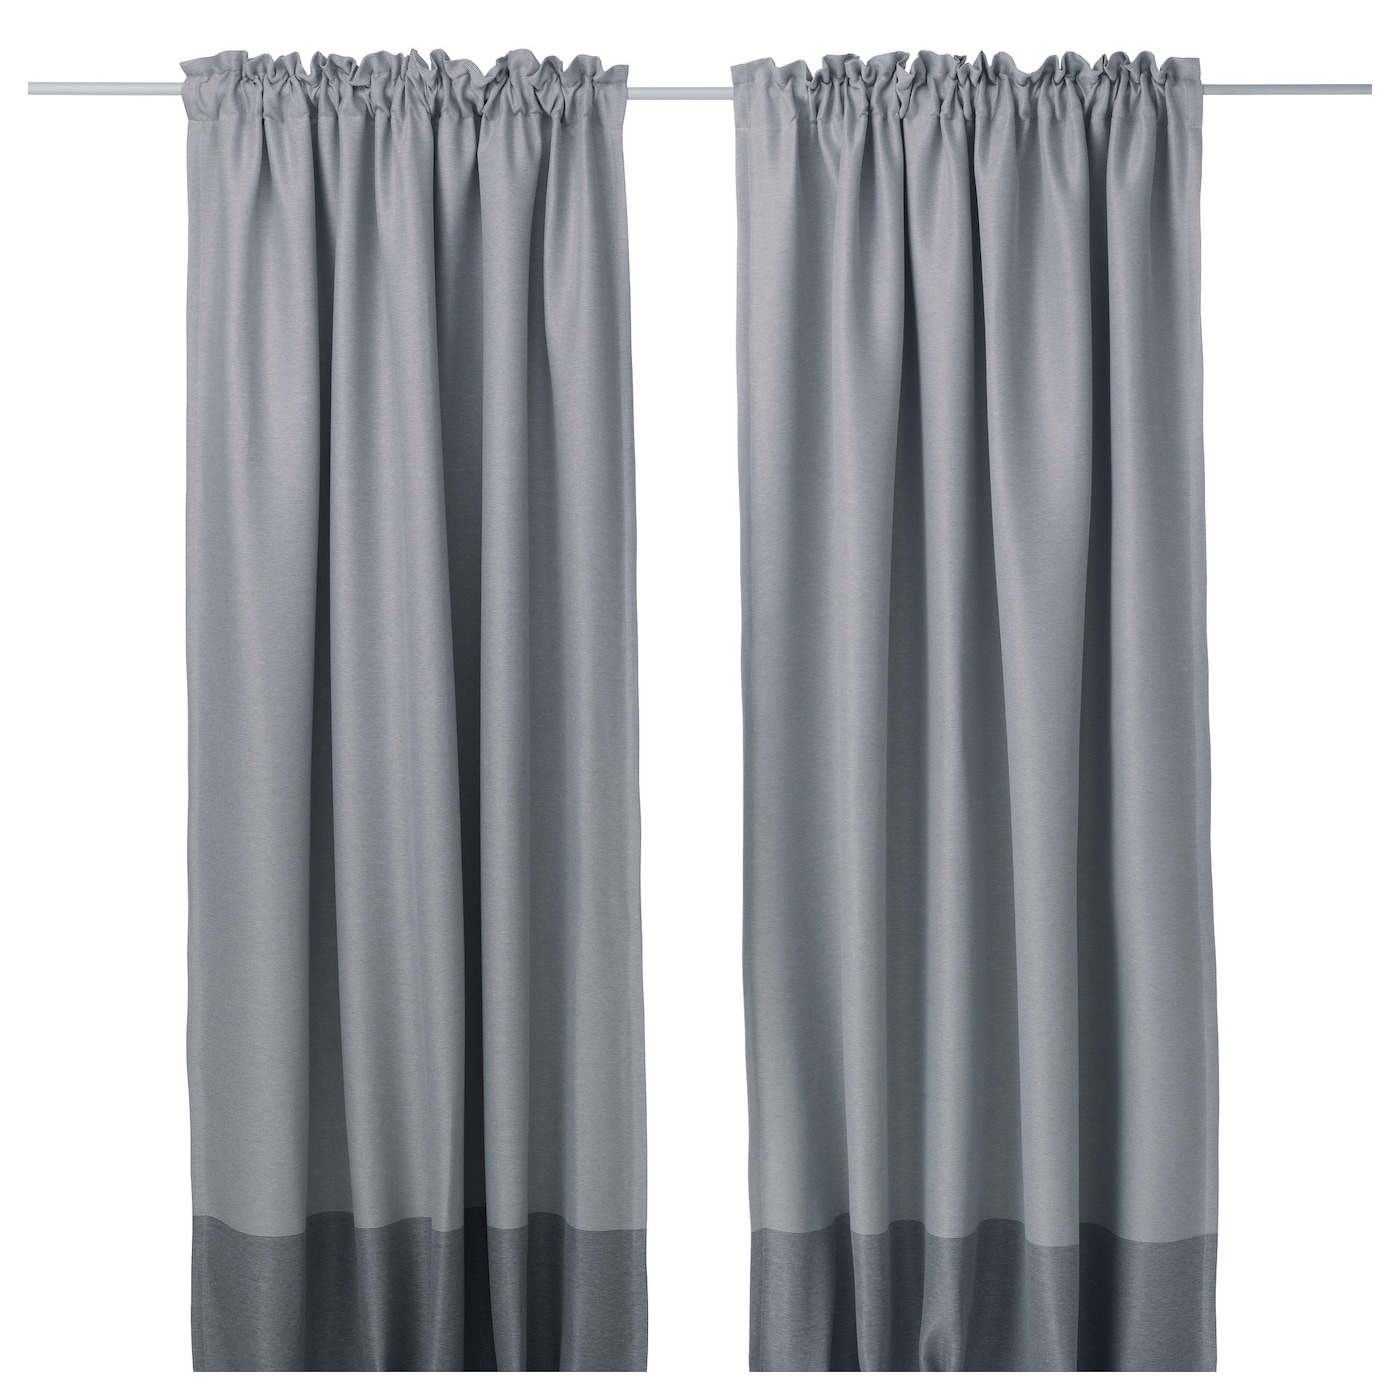 IKEA MARJUN Block Out Curtains, 1 Pair The Curtains Can Be Used On A Part 41